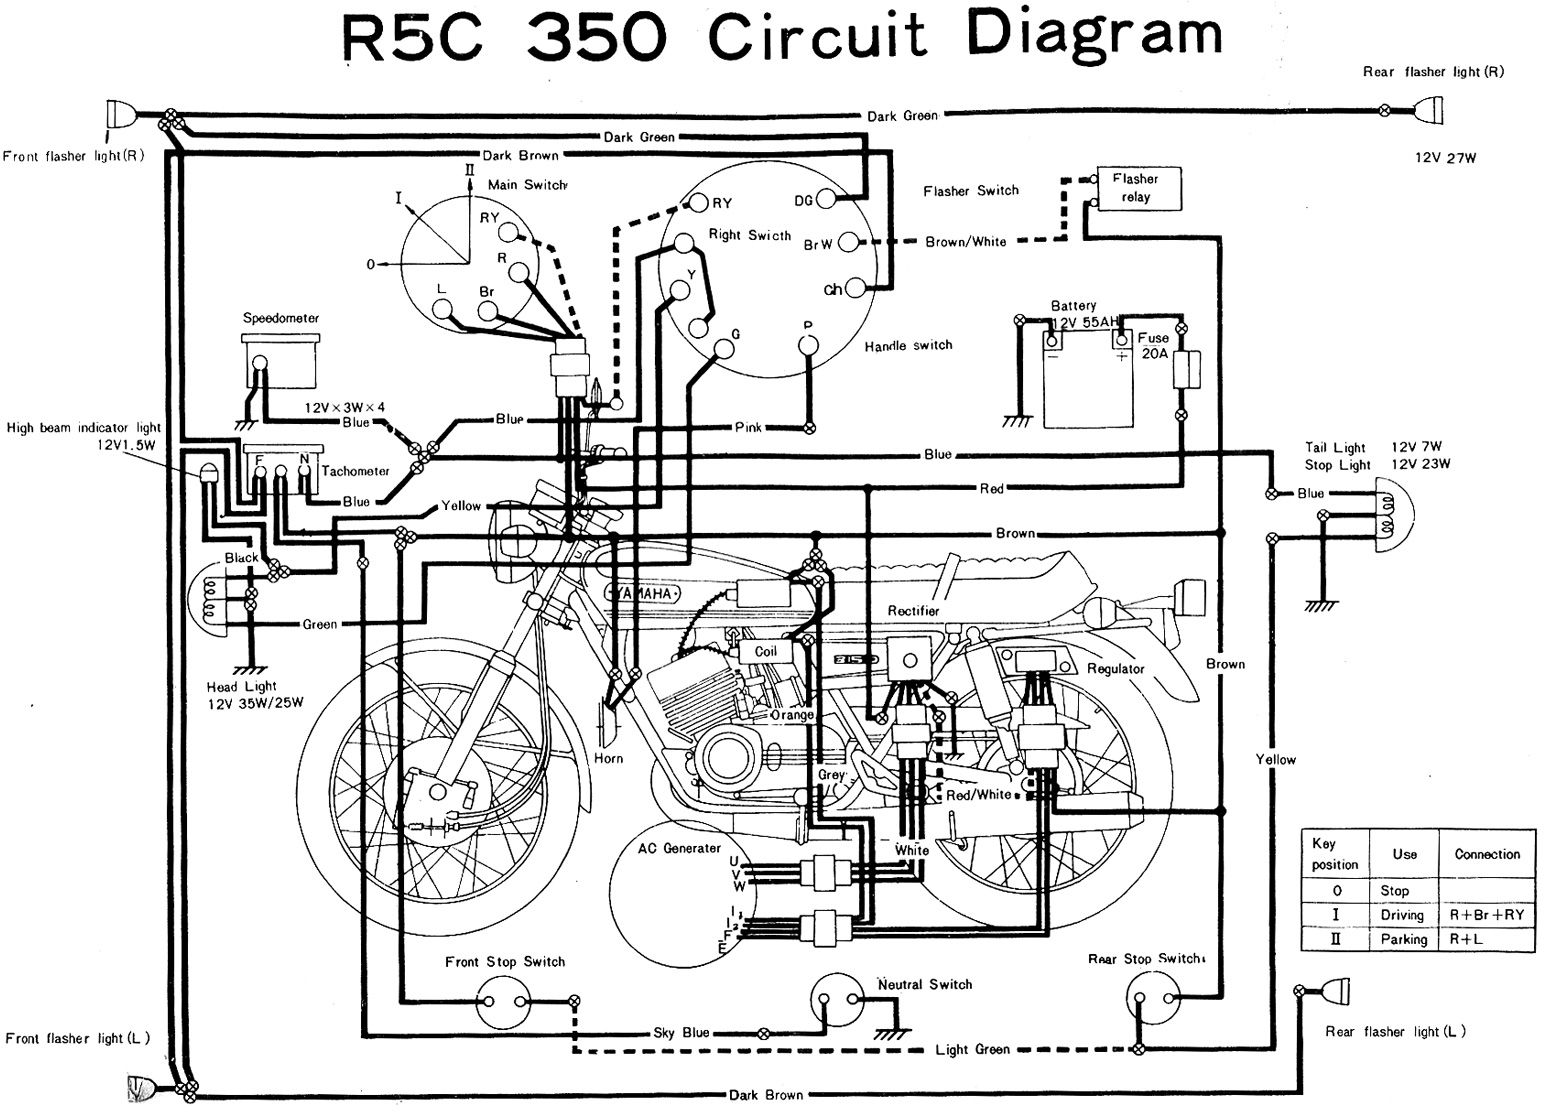 hight resolution of yamaha rd350 r5c wiring diagram